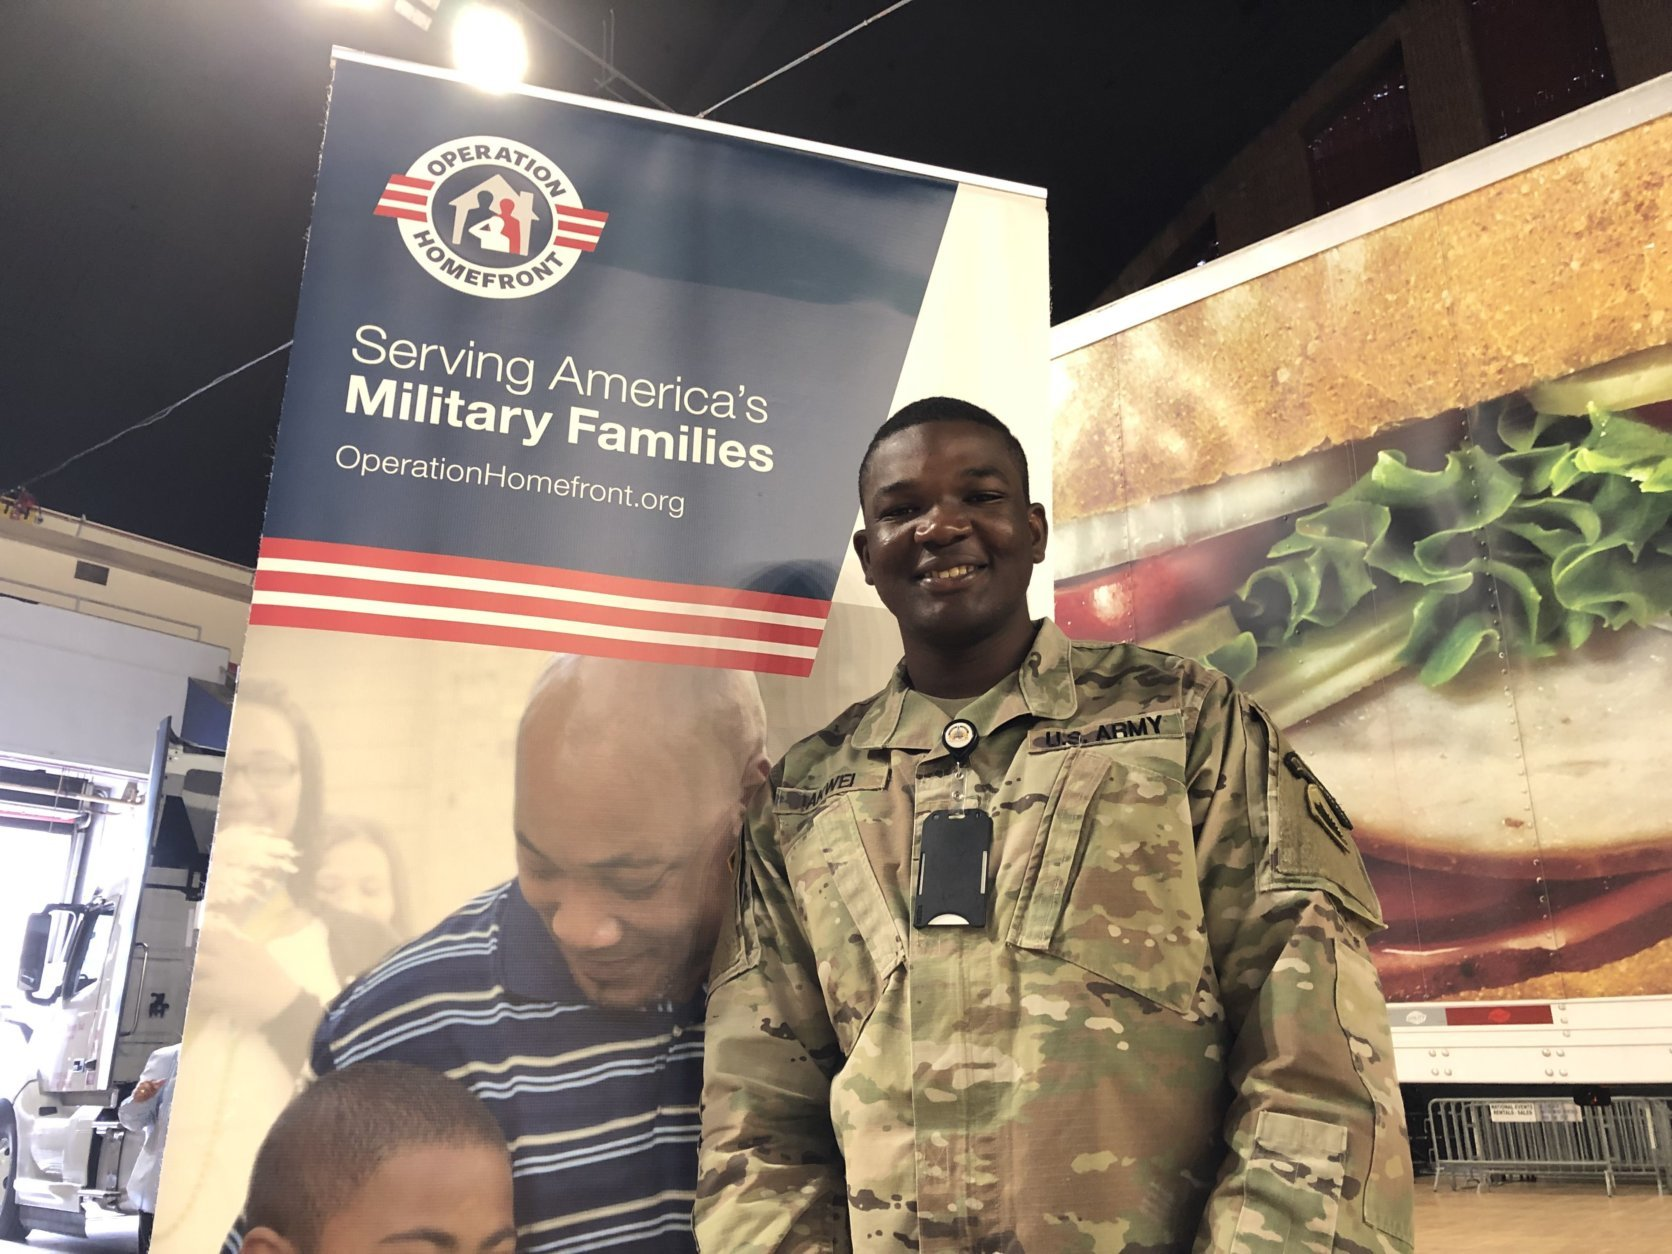 """We know that people really care about what we do,"" D.C. National Guard Spec. Emmil Akwei said of the event. ""It's a very nice way that people really show their appreciation to us, so that's really good."" (WTOP/Kristi King)"